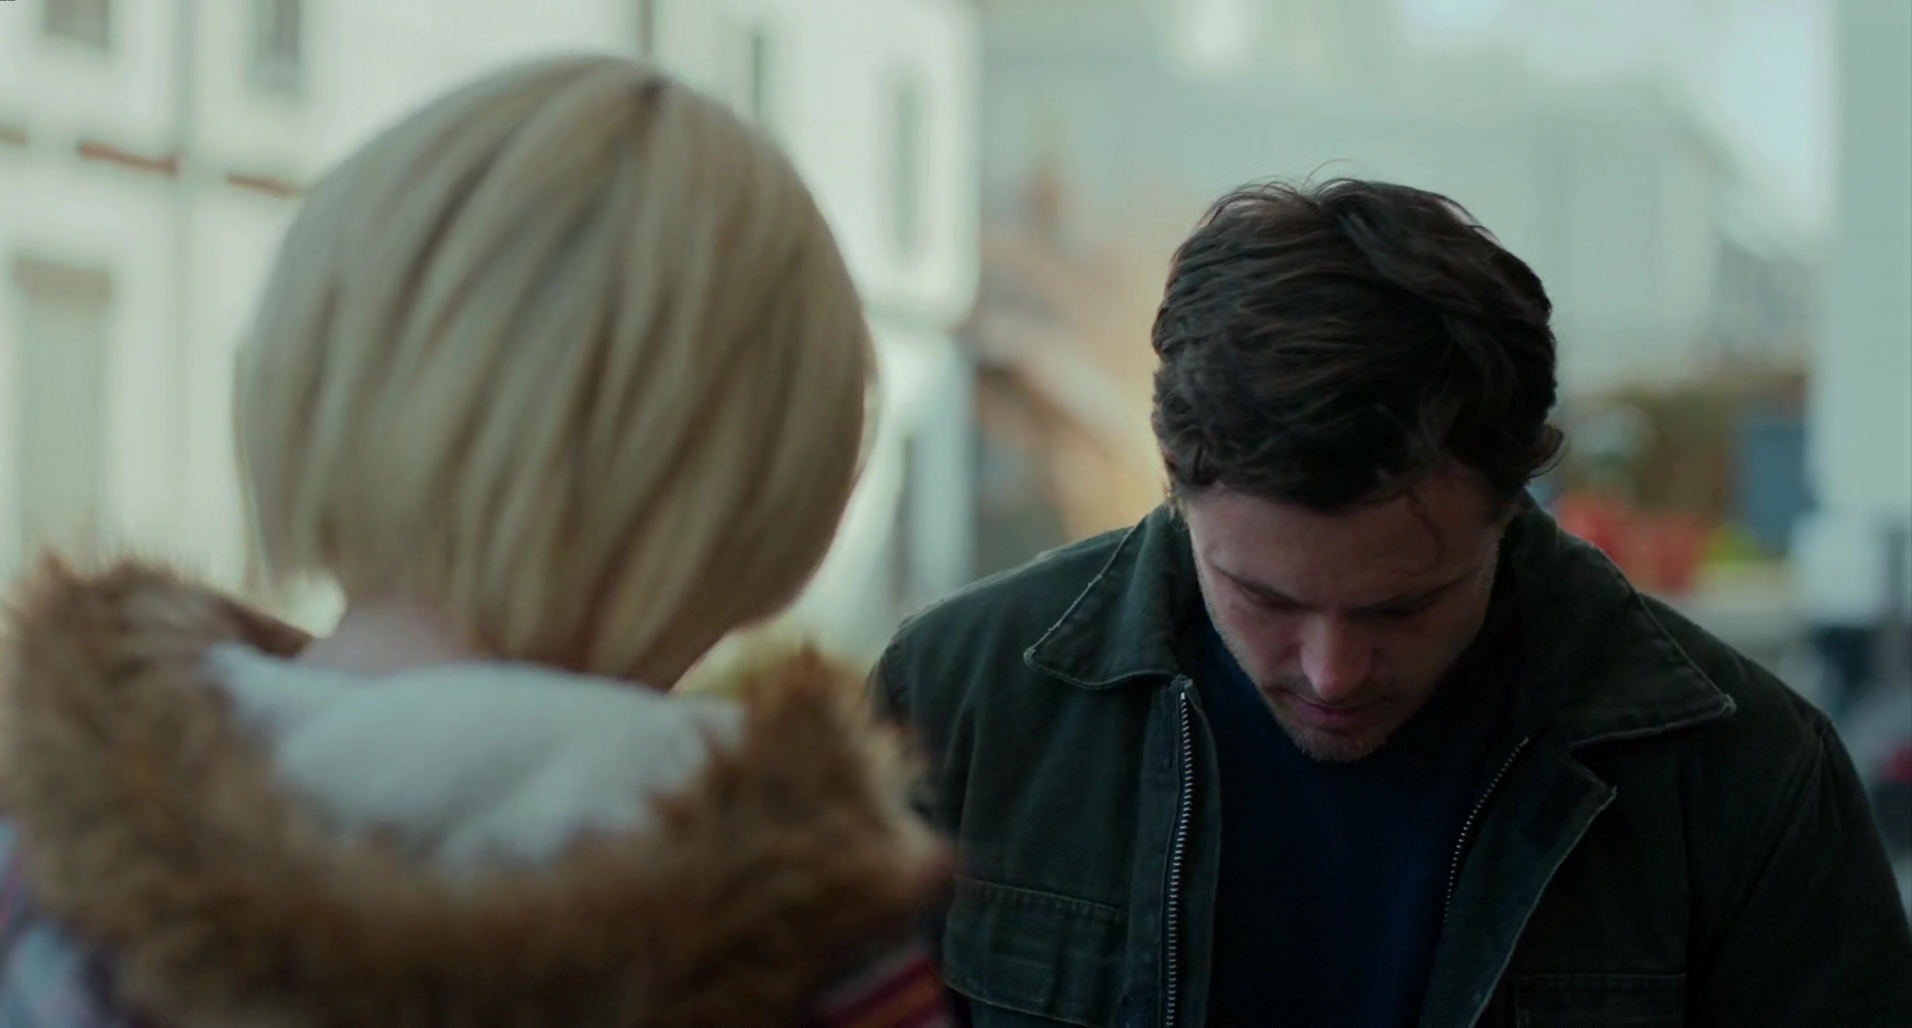 http://bayanbox.ir/view/1017474595707148419/manchester.by.the.sea.2016.1080p.web.dl.dd5.1.hevc.x265.rmteam-2-169083-2017-06-29-01-51-27.jpg